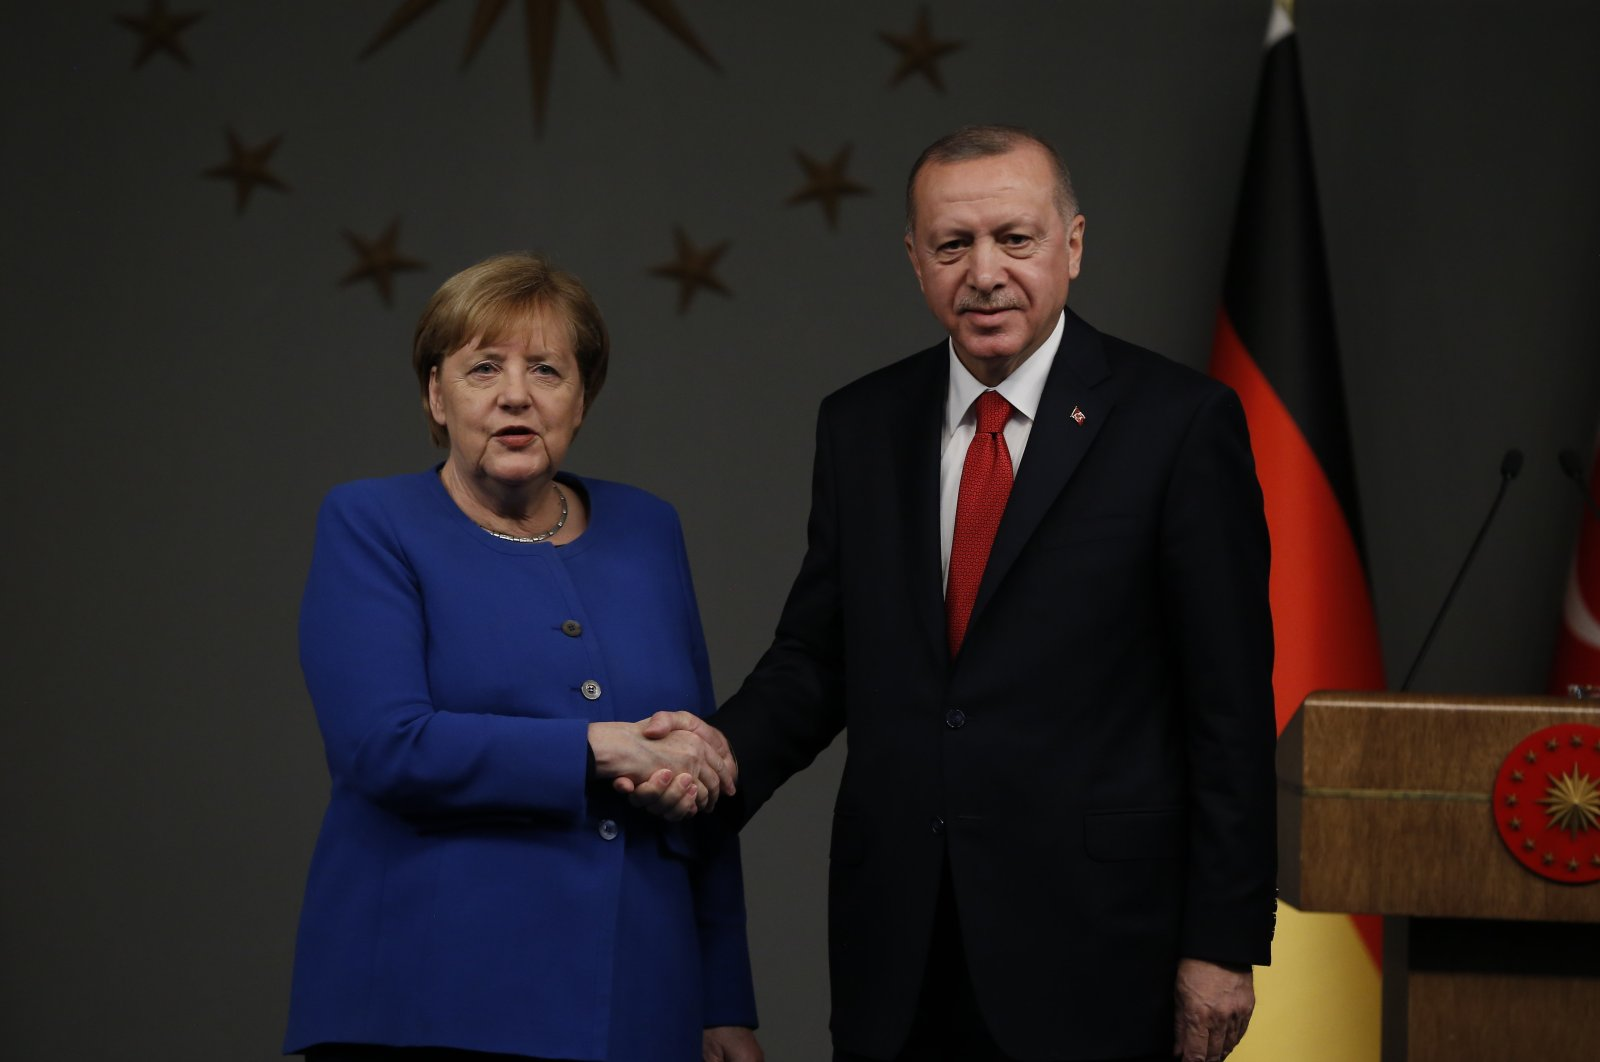 Germany's Chancellor Angela Merkel, left, shakes hands with President Recep Tayyip Erdoğan, right, following their joint news conference after their meeting in Istanbul, Jan. 24, 2020. (AP)